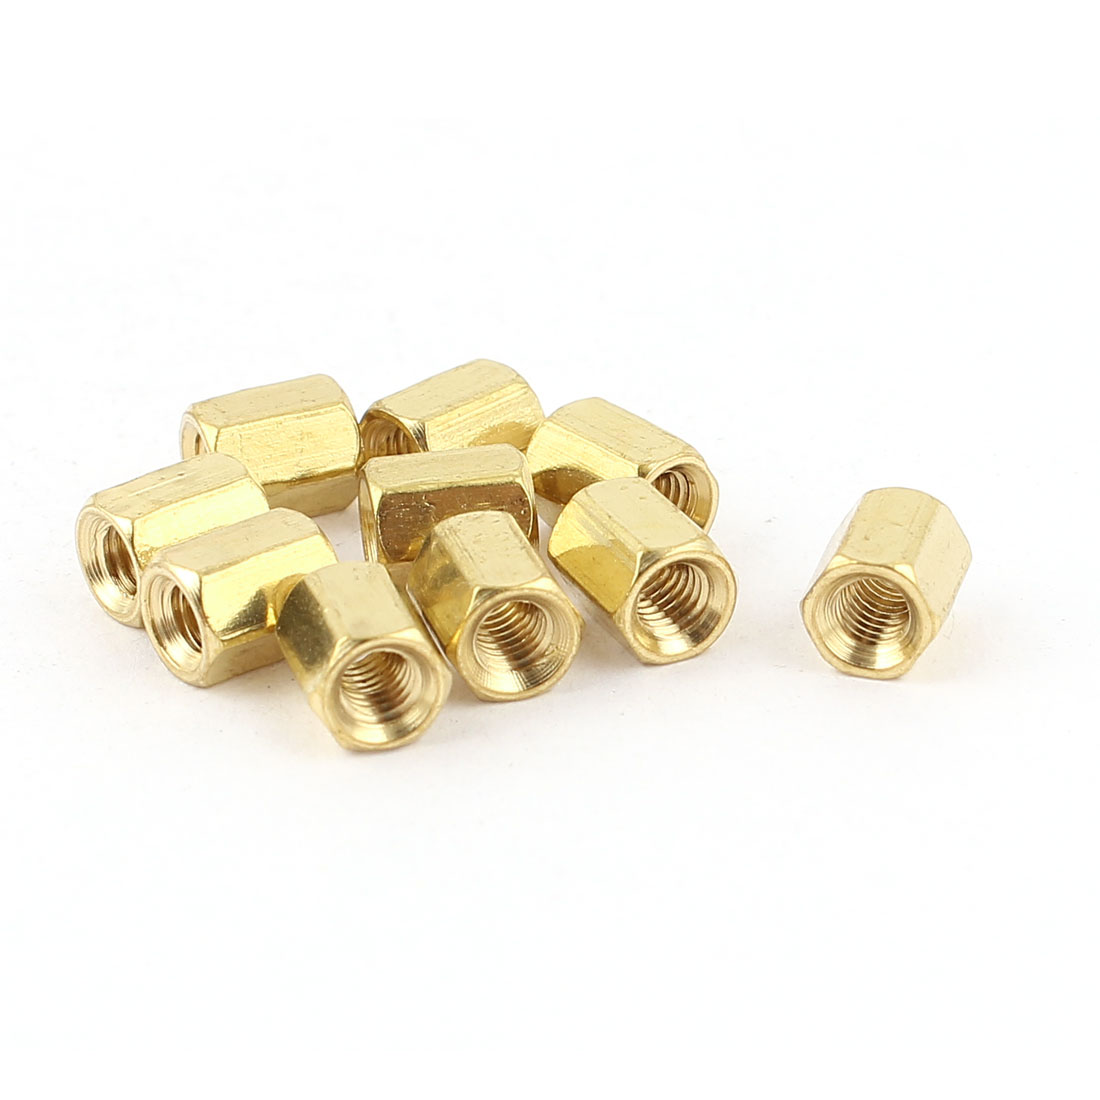 M3 x 6mm Female/Female Thread Brass Hex Standoff PCB Pillar Spacer 10pcs